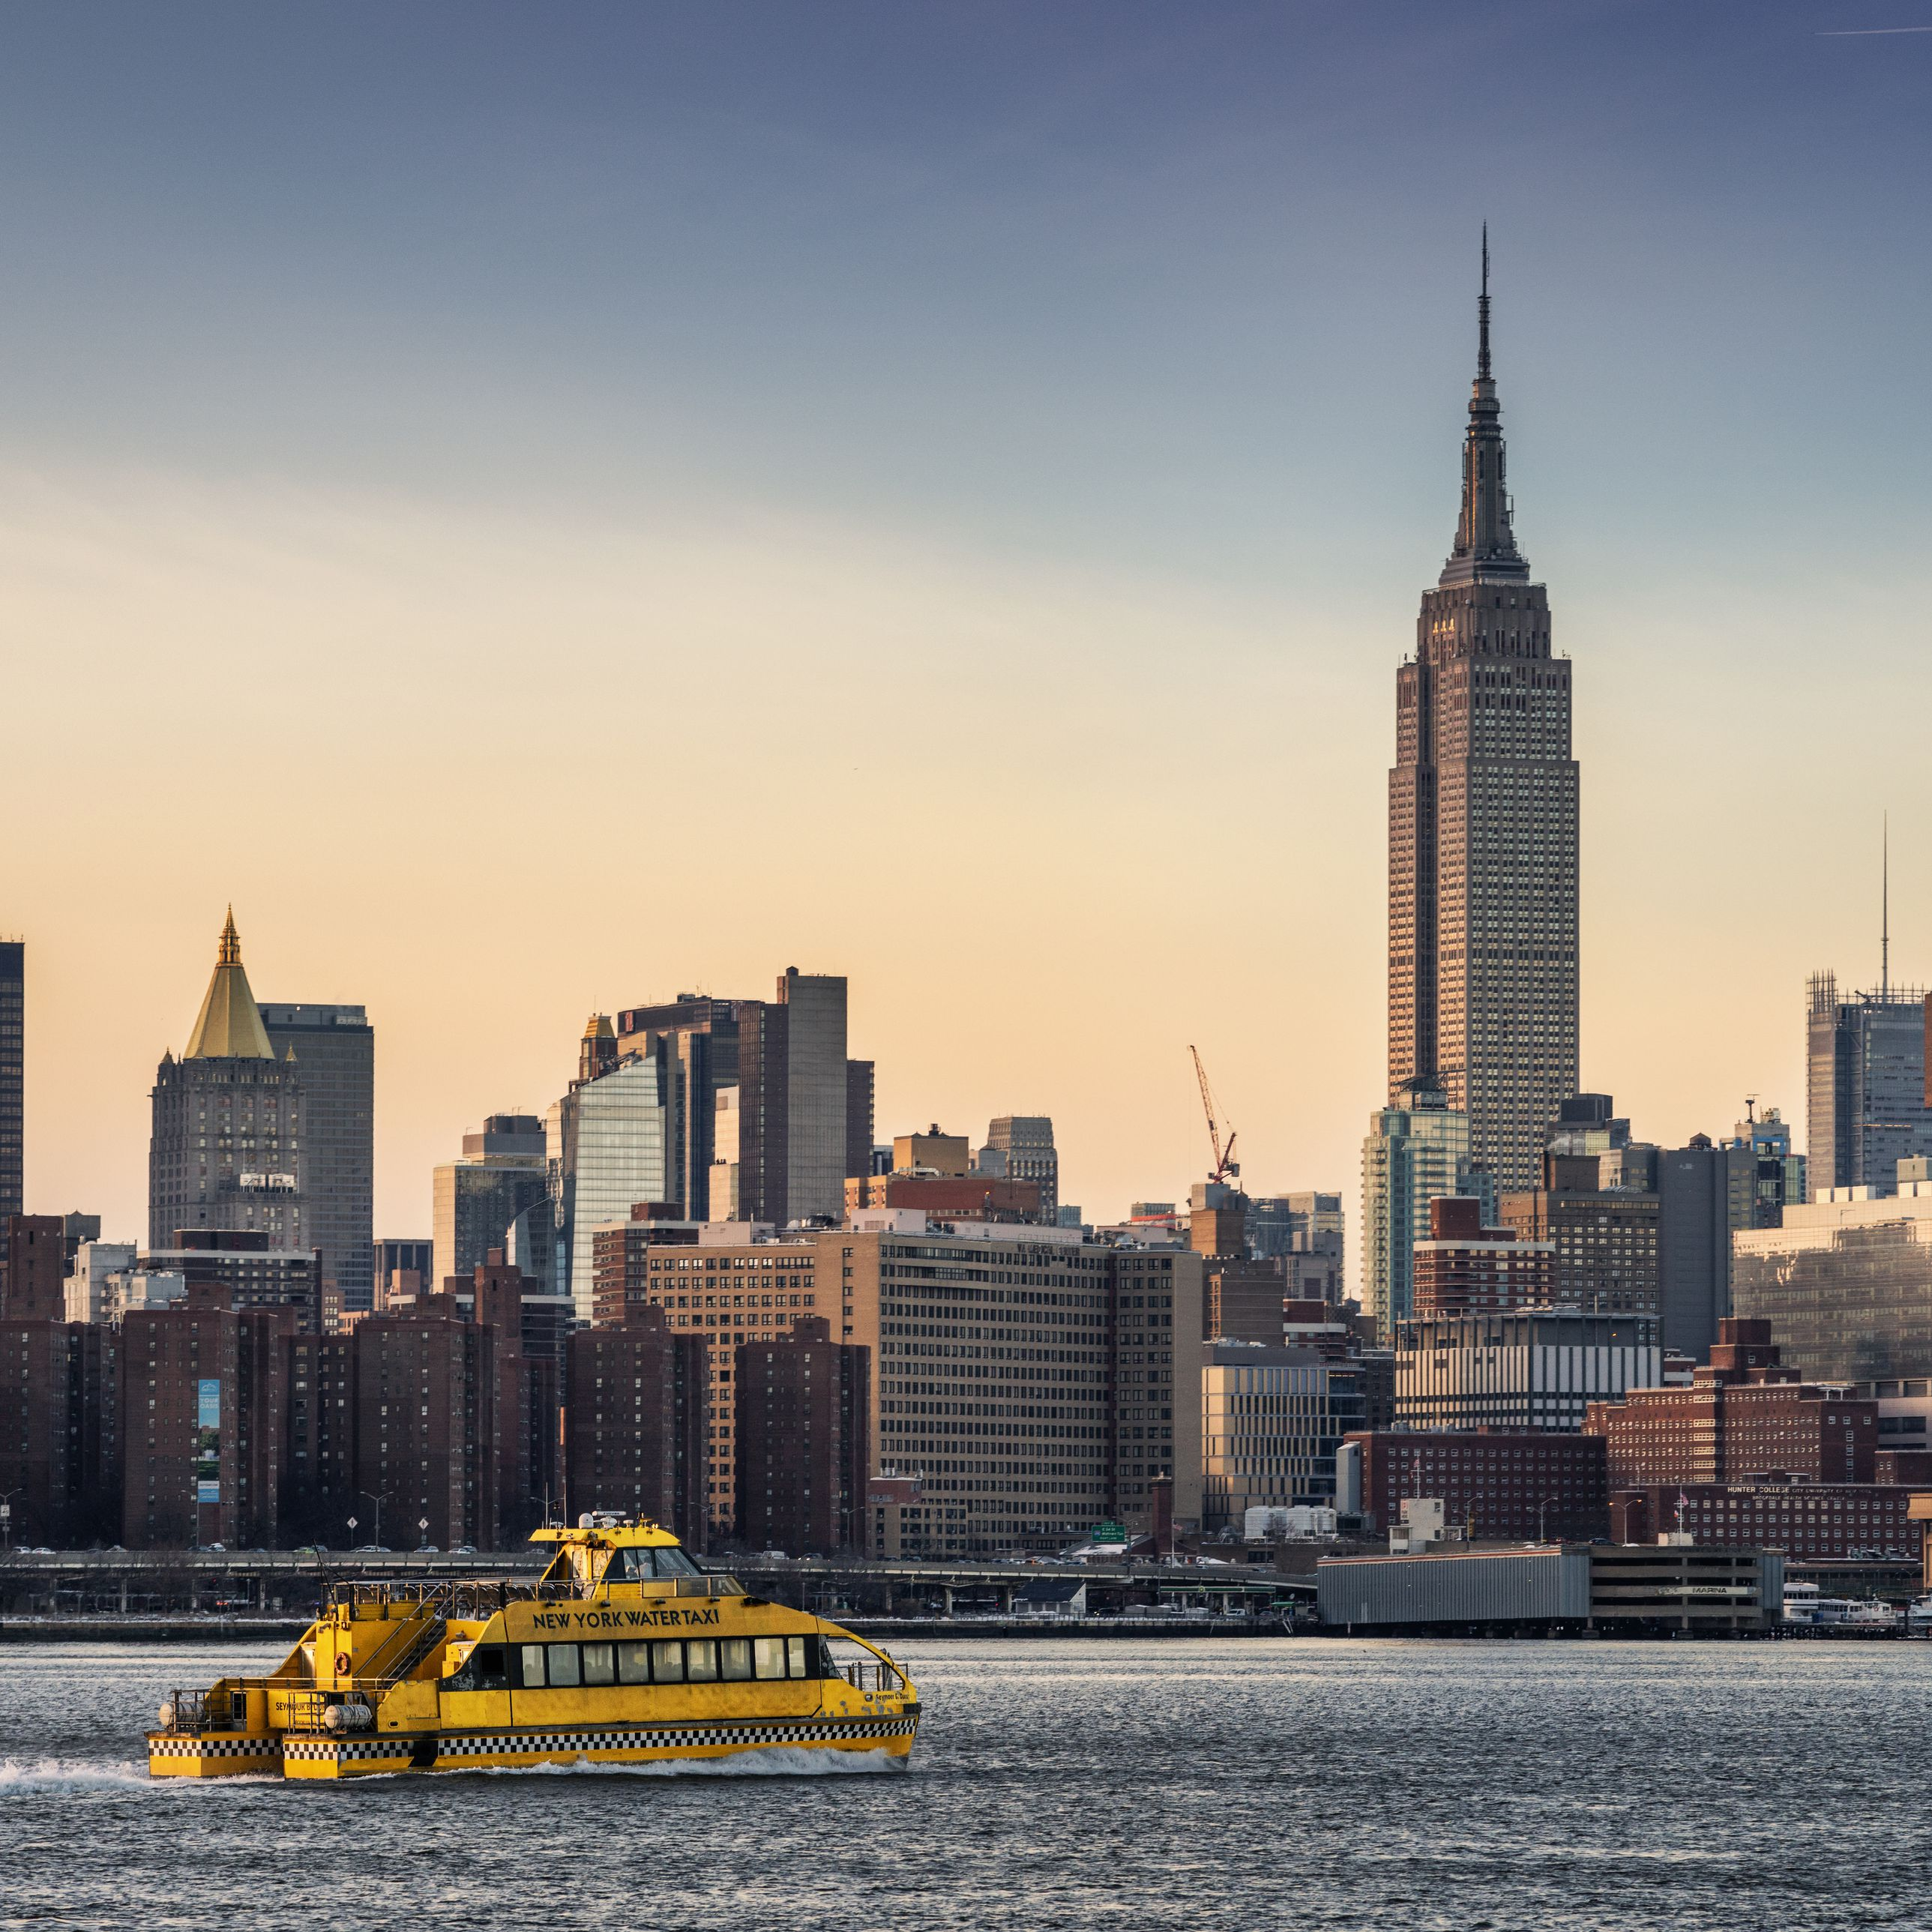 Brooklyn: How to Get to Governors Island